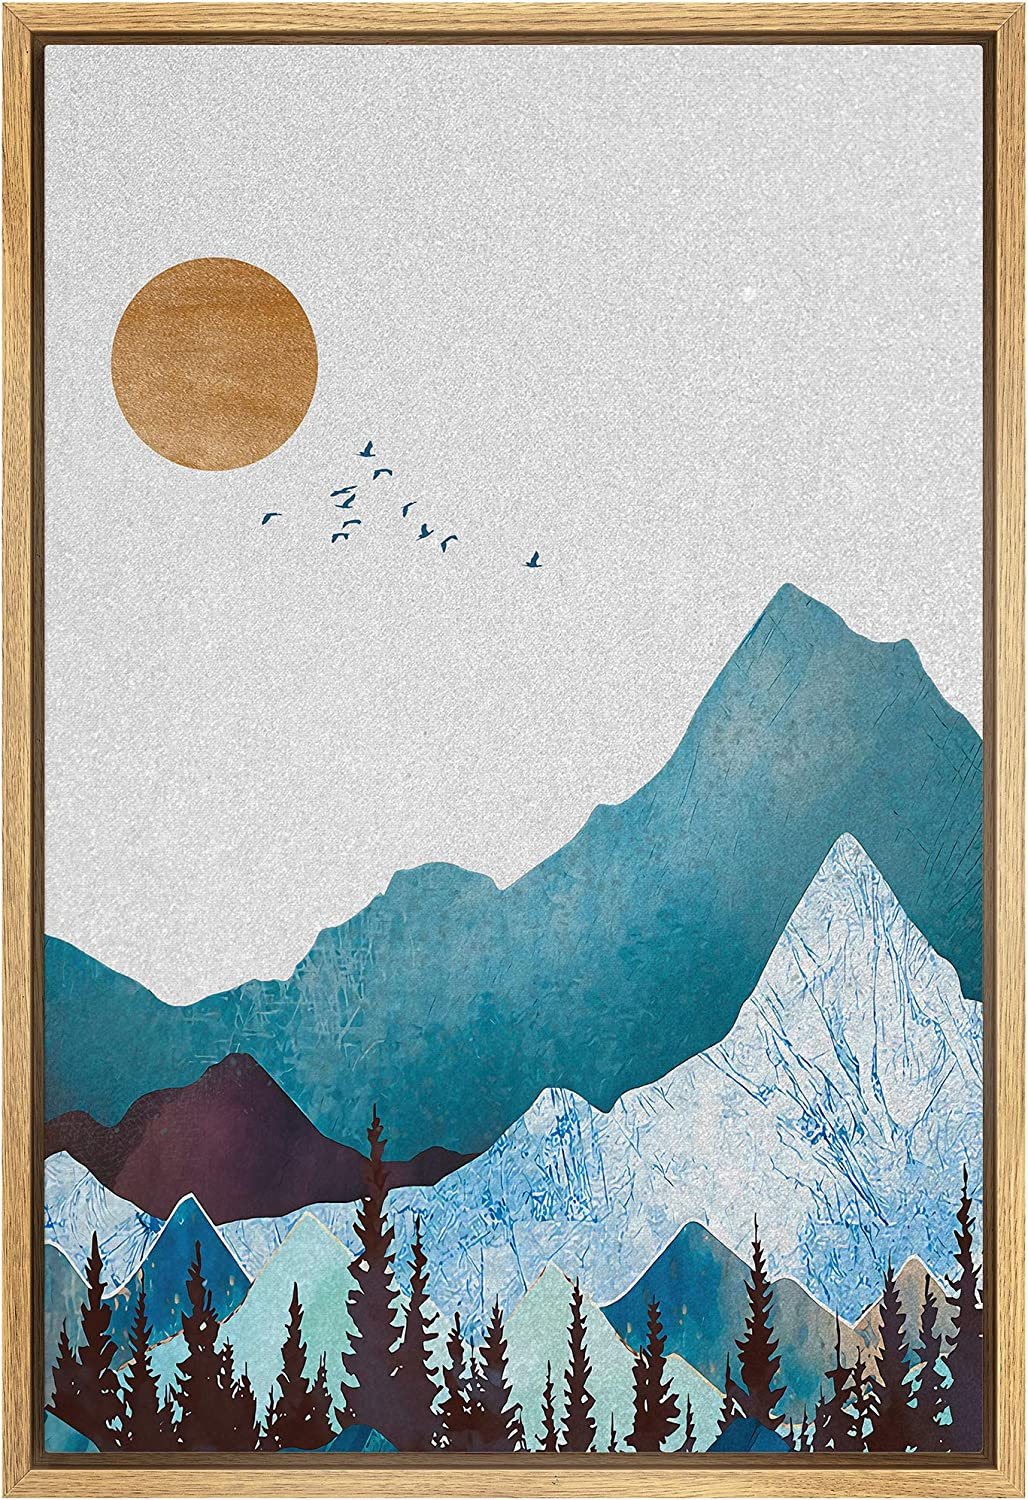 SIGNFORD Framed Canvas Print Wall Blue Las Vegas Mall Ranking TOP1 Art with Mountains Granit